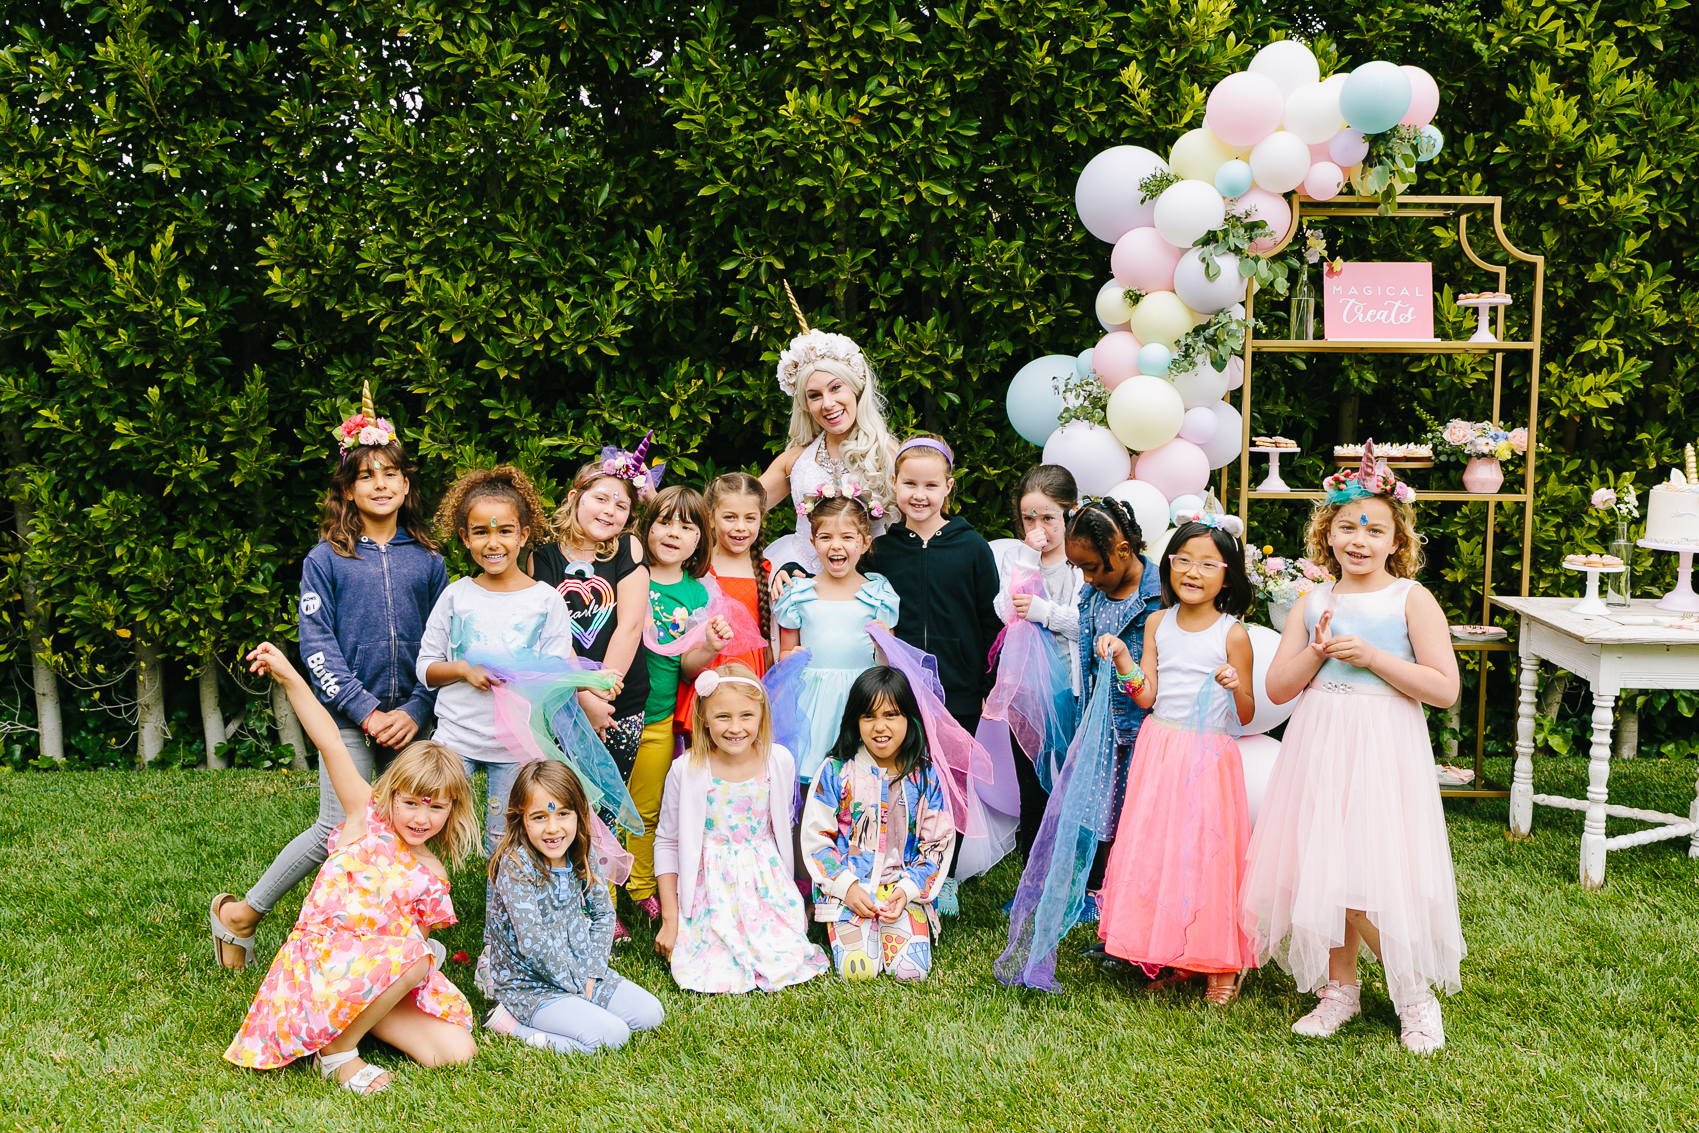 Los_Angeles_Family_Photographer_Luxury_Childrens_Party_Beverly_Hills_Unicorn_Birthday_Party-1262.jpg